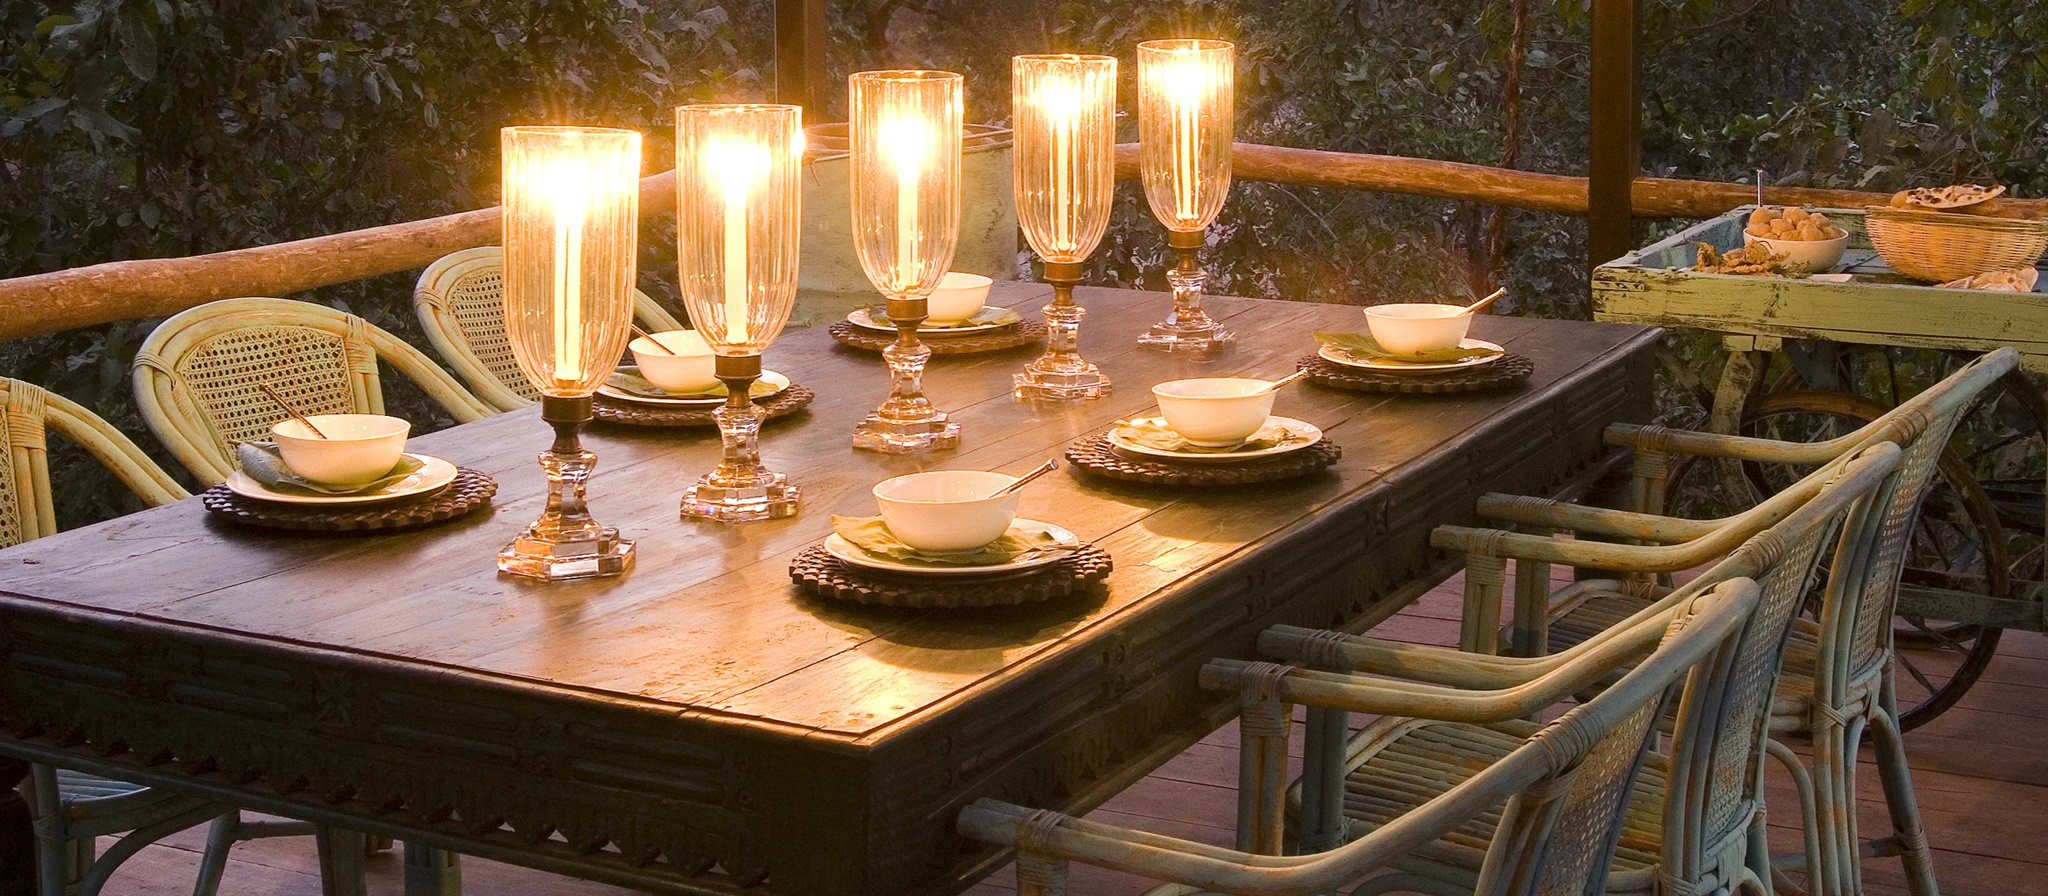 /content/dam/luxury/hotels/Taj_Safaris/Baghvan_Pench/images/16x7/OutsideDining-16x7.jpg